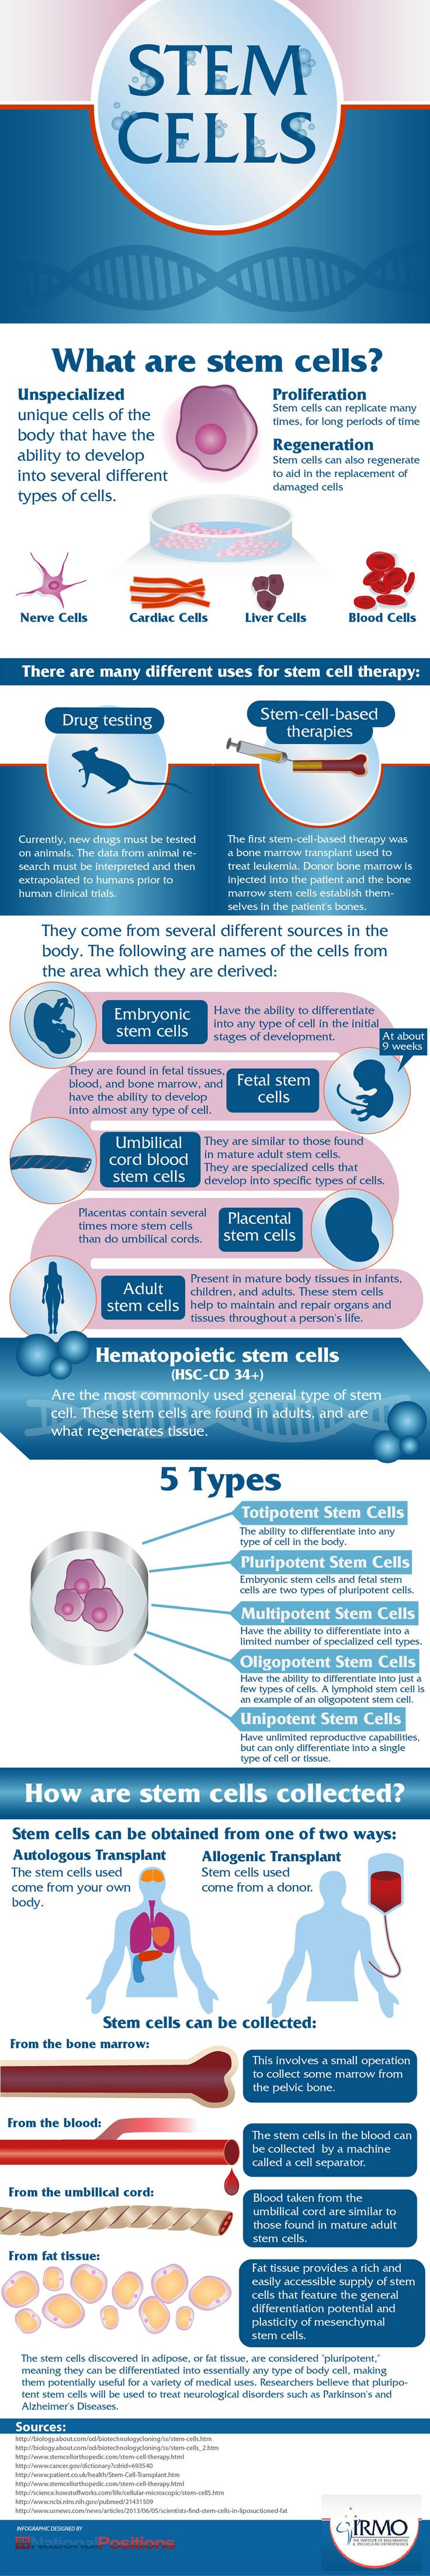 Stem Cell information and how you can use it to your benefit every day!. #stemcells, #stemcellbenefits, #wellness, #healthyliving